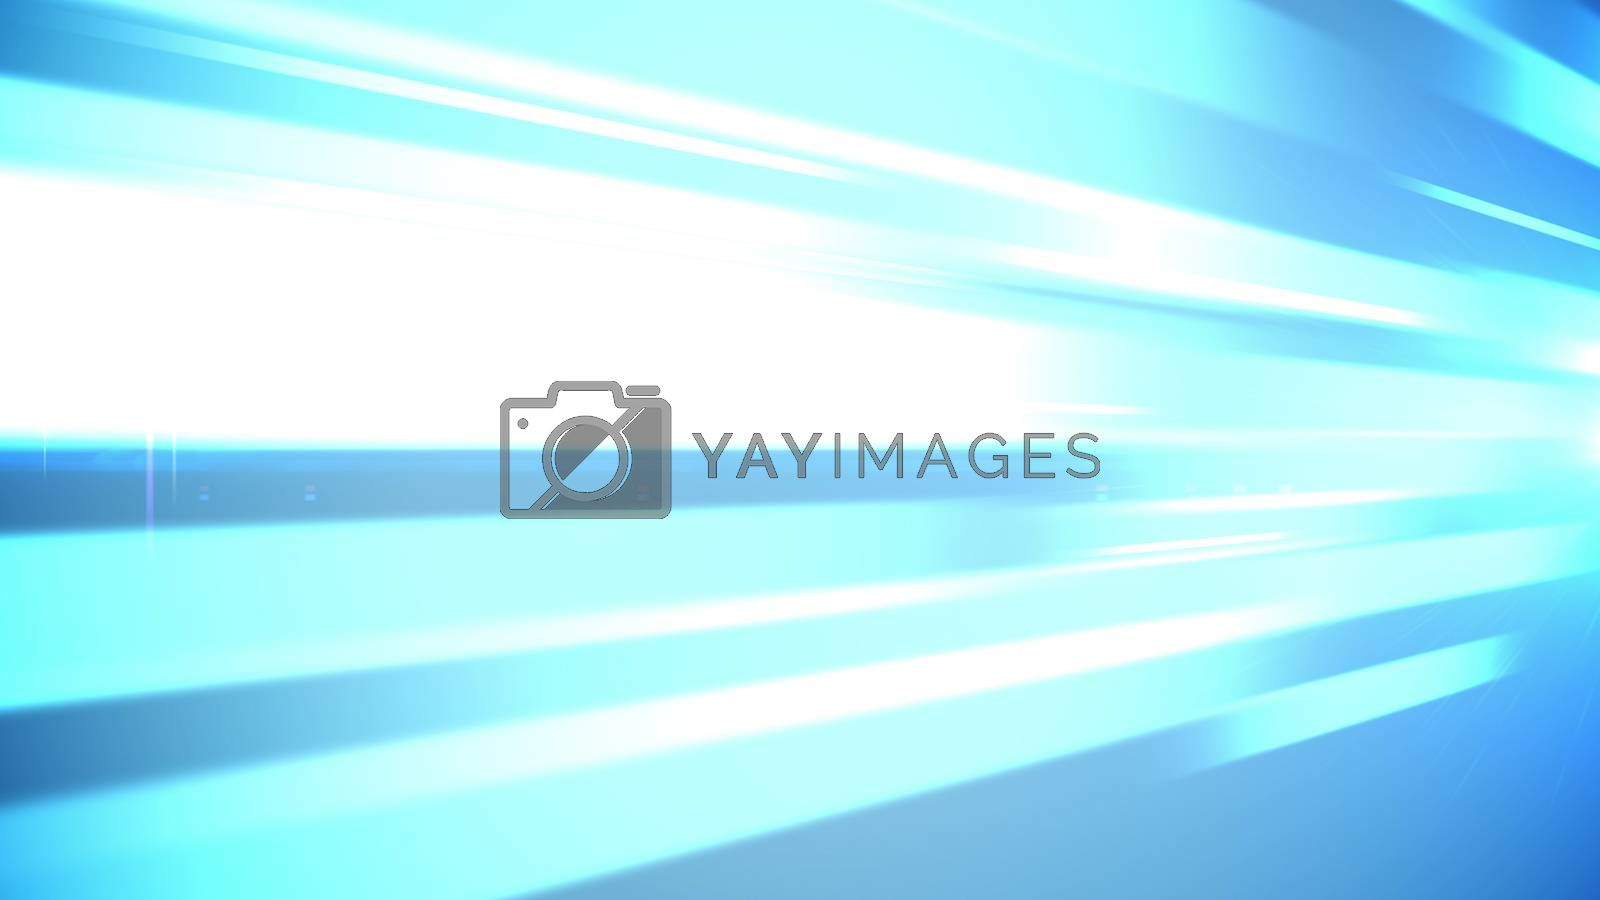 An artistic 3d rendering of blue and white bar lines inspiring people for flights of thought and brainstorming decisions. The image has a mesmerizing effect